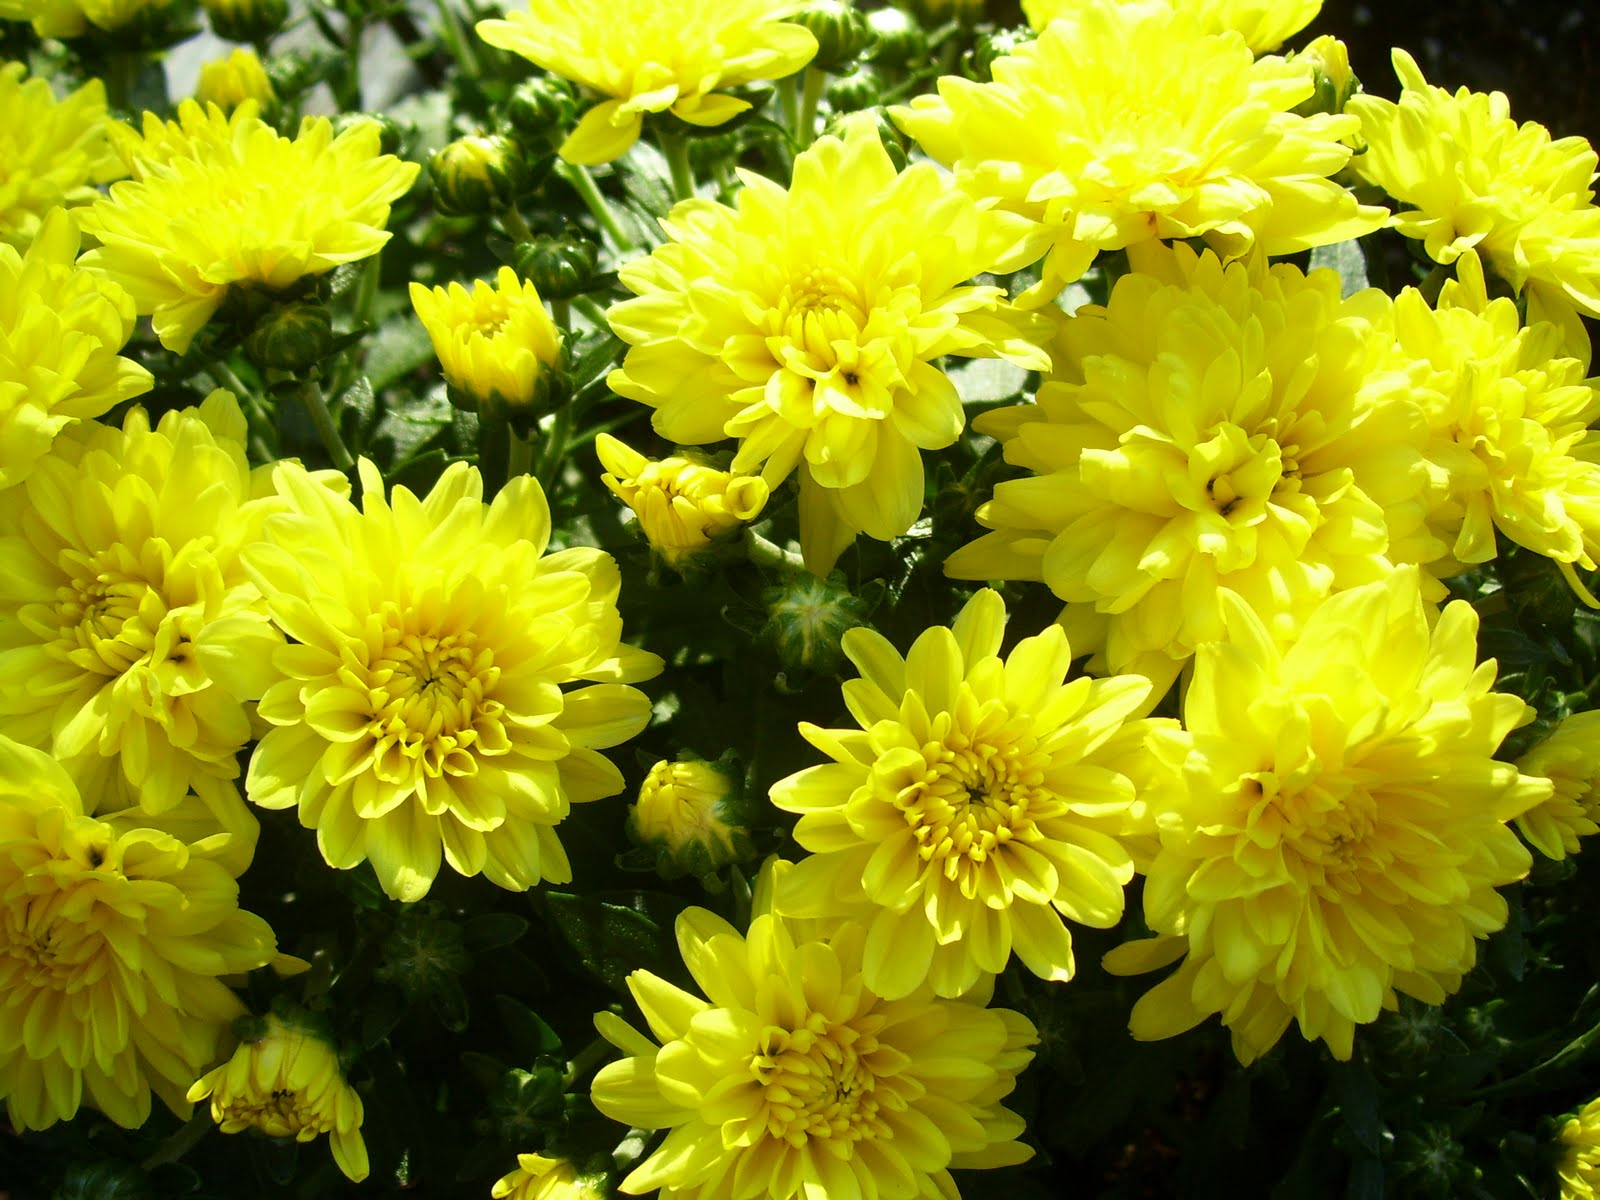 Peridotsgardenblog Fall Flowers Chrysanthemums And Asters